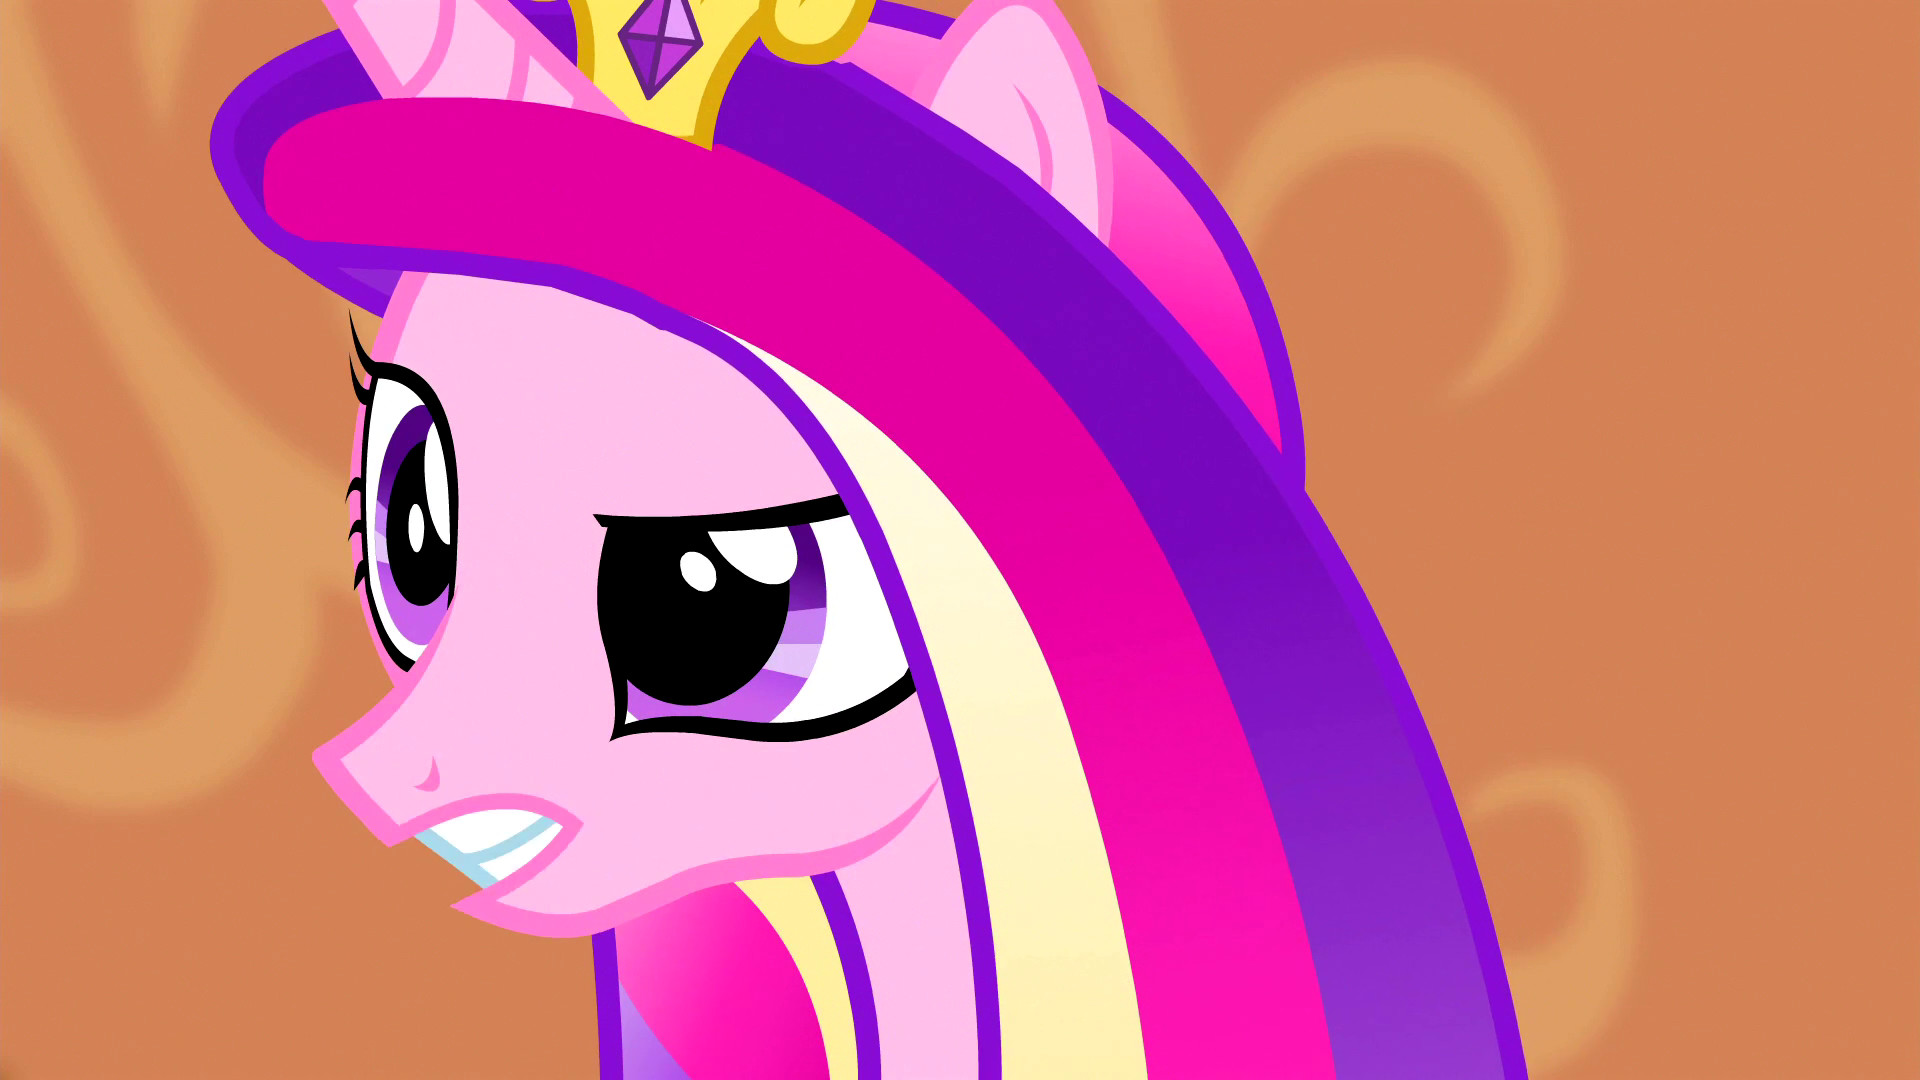 1920x1080 Princess Cadence images cadence HD wallpaper and background photos